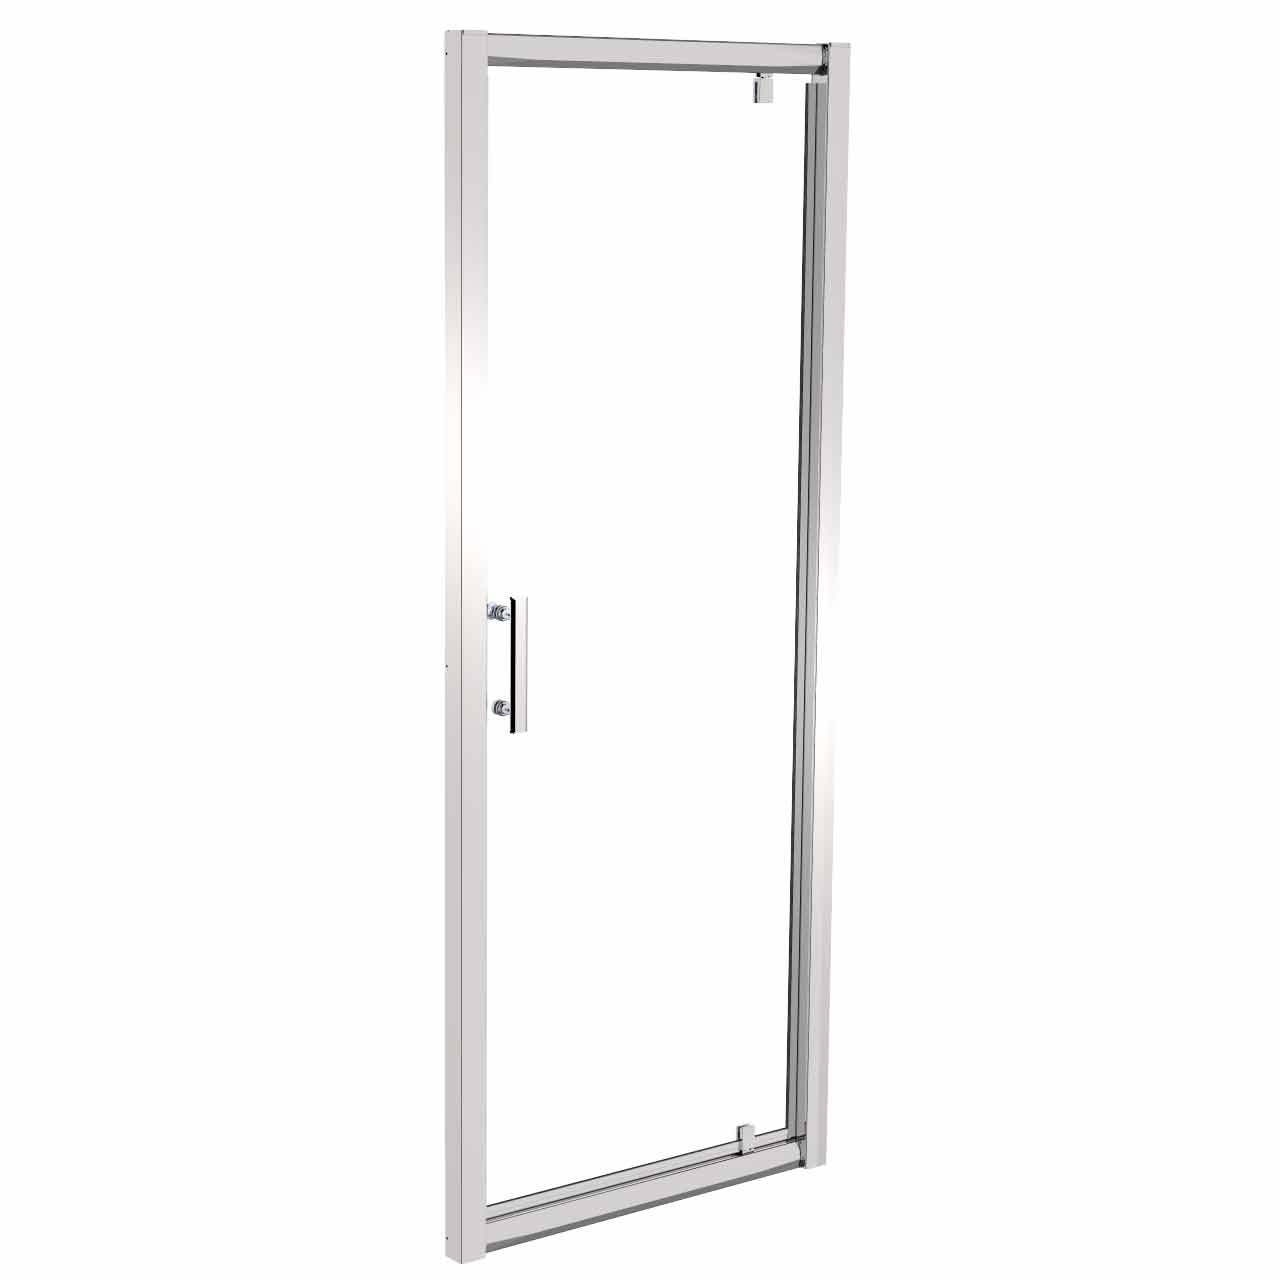 Series 6 760mm x 1000mm Pivot Door Shower Enclosure